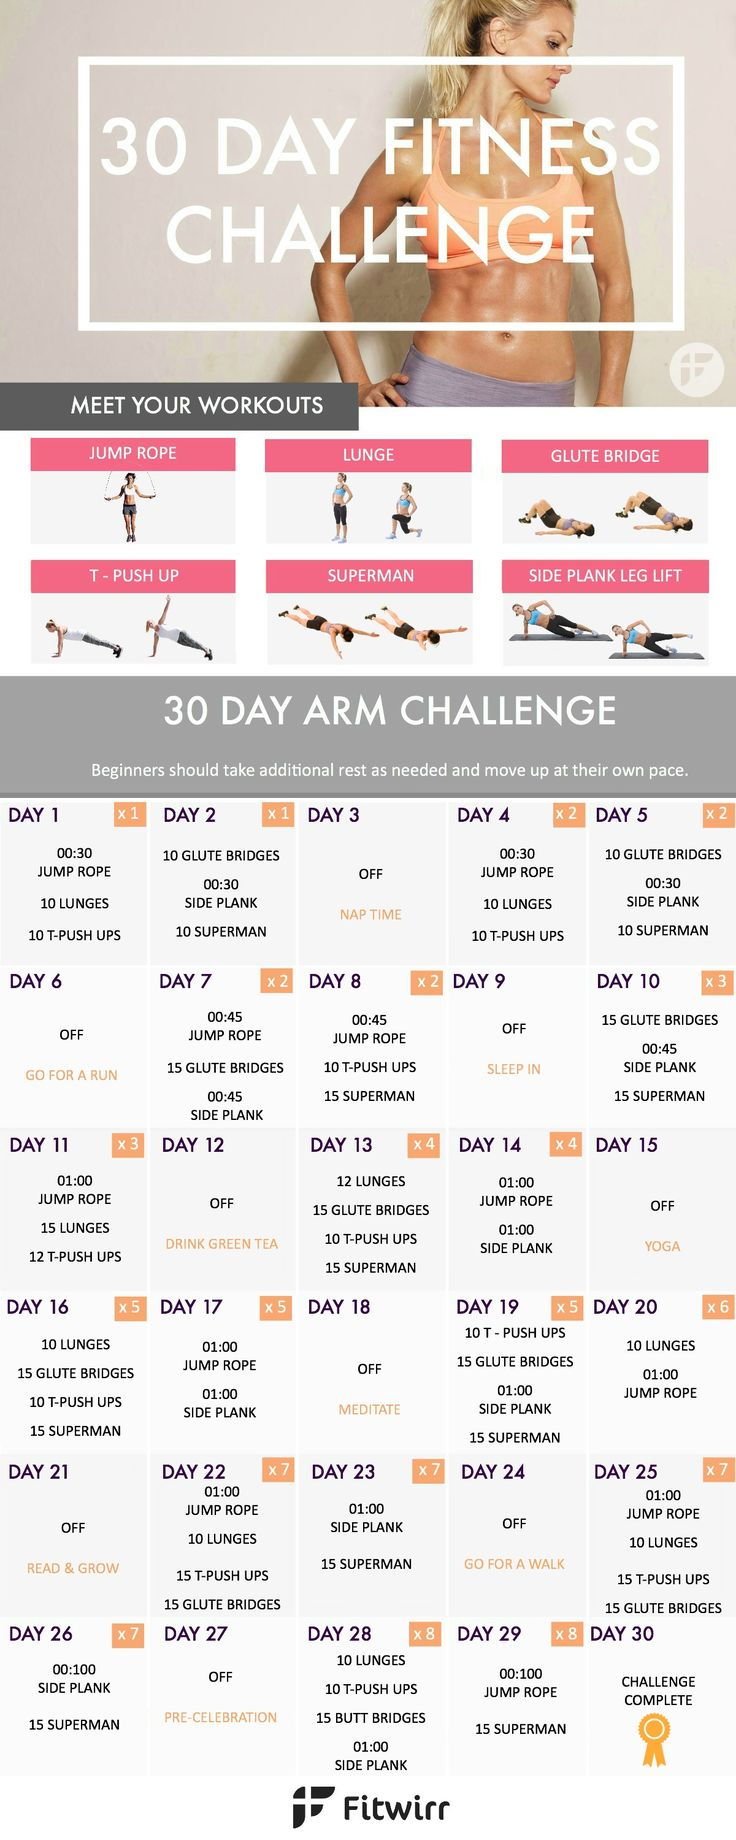 Best 20+ 30 Day Workouts ideas on Pinterest | 30 challenge ...